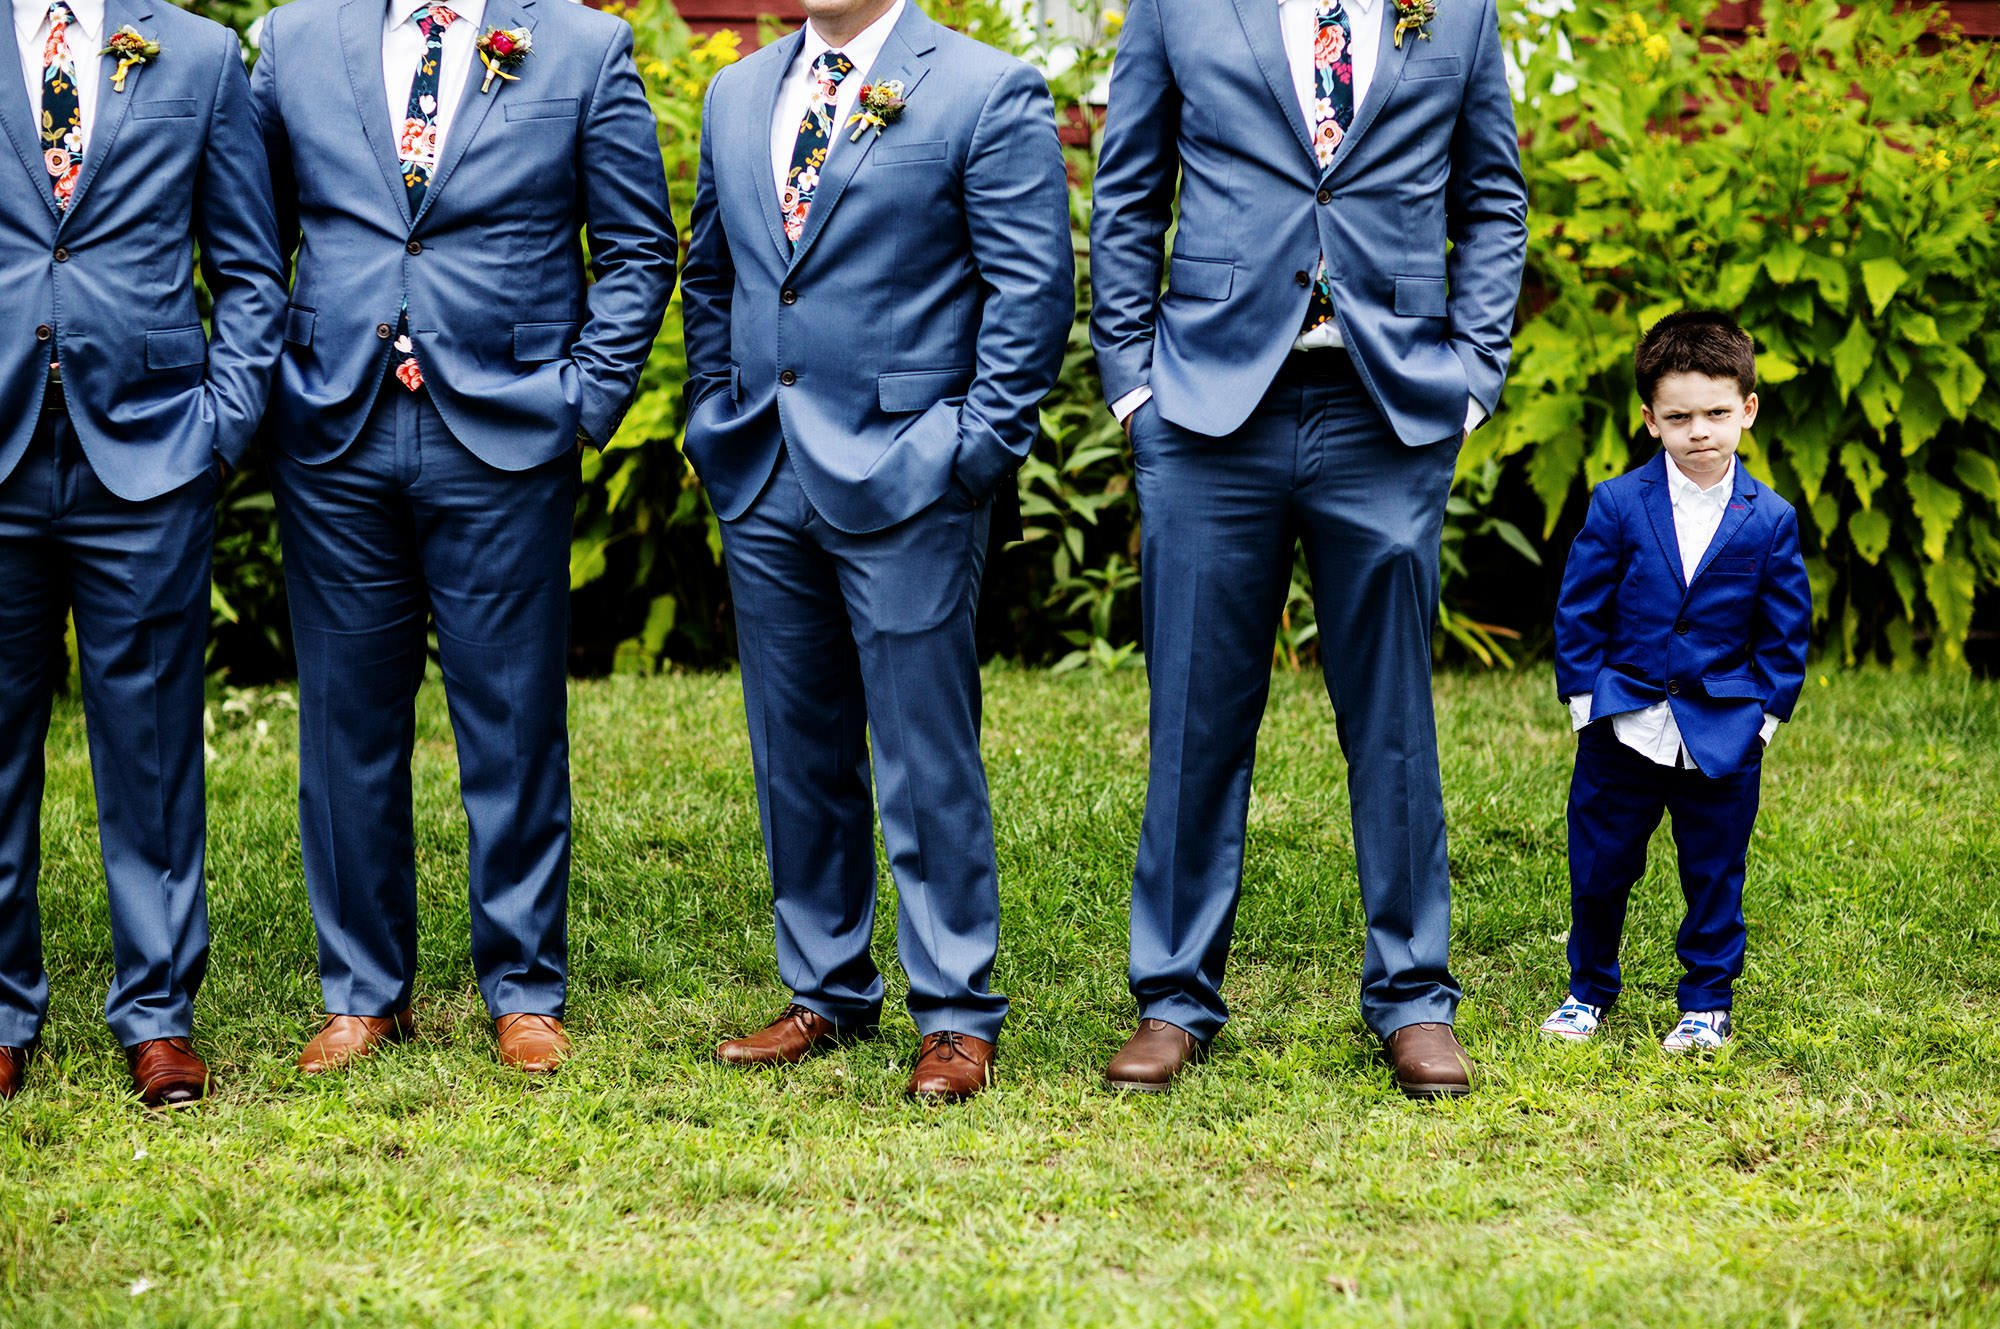 Groomsmen pose for a portrait on the Bishop Farm wedding day.